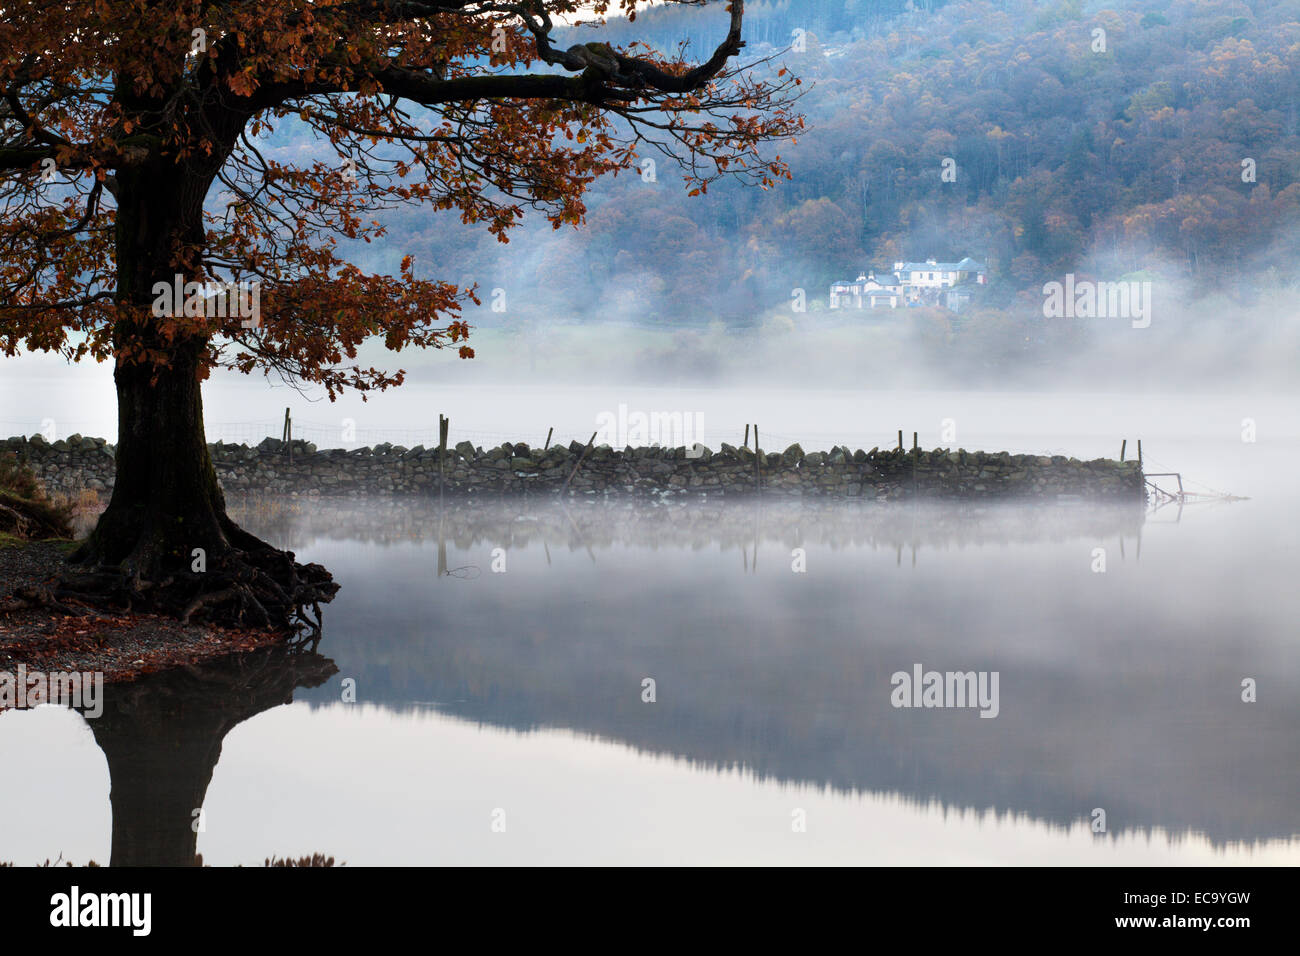 Brantwood across Coniston Water on a Misty Autumn Morning near Coniston Cumbria England - Stock Image